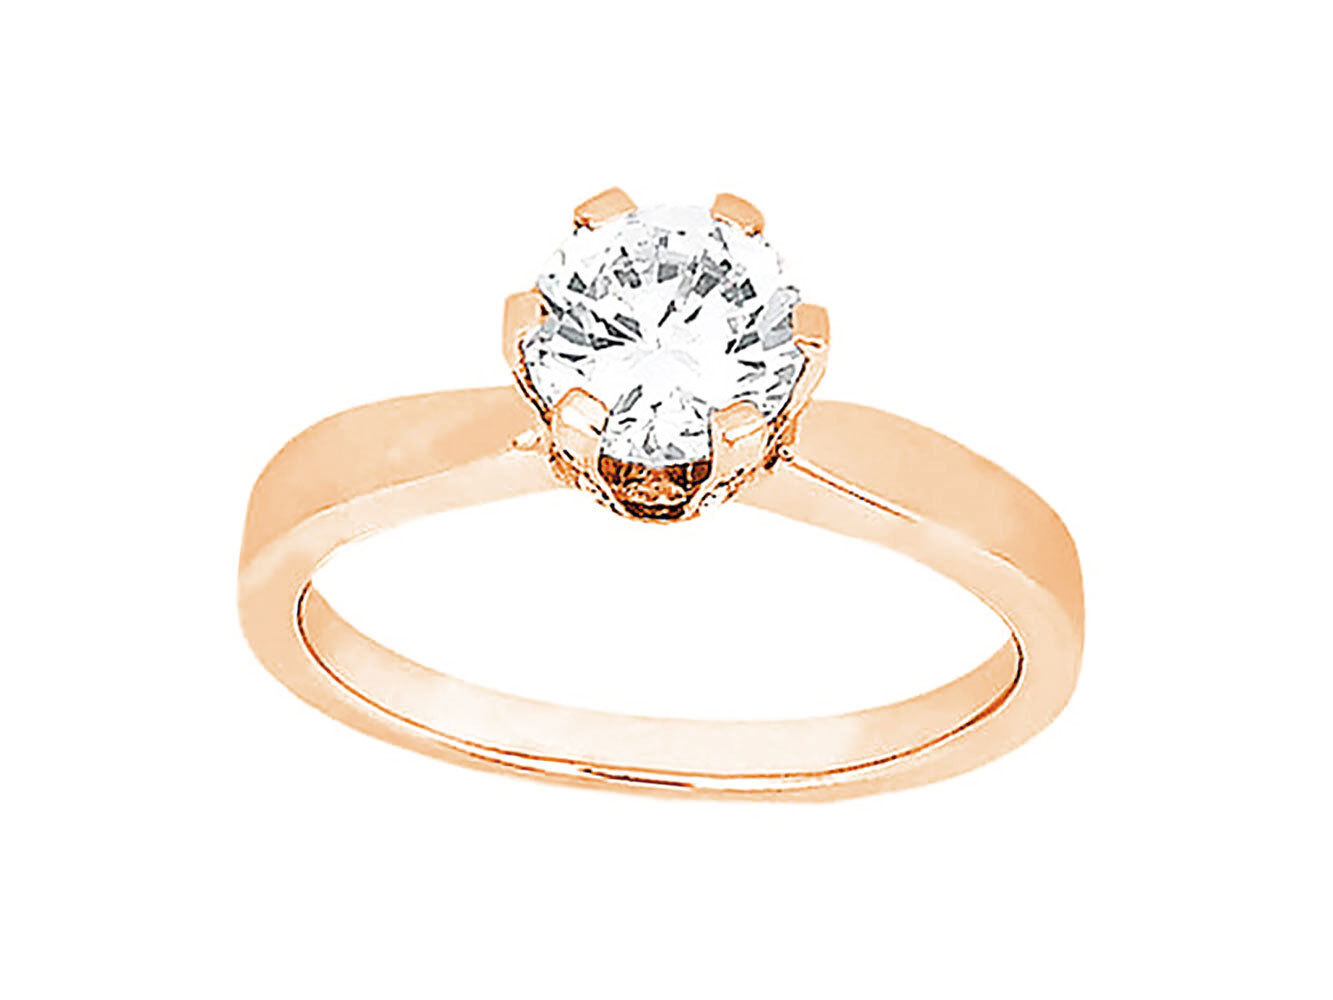 Natural 0.75Ct Round Diamond Accented Solitaire Engagement Ring 10k gold HI SI2